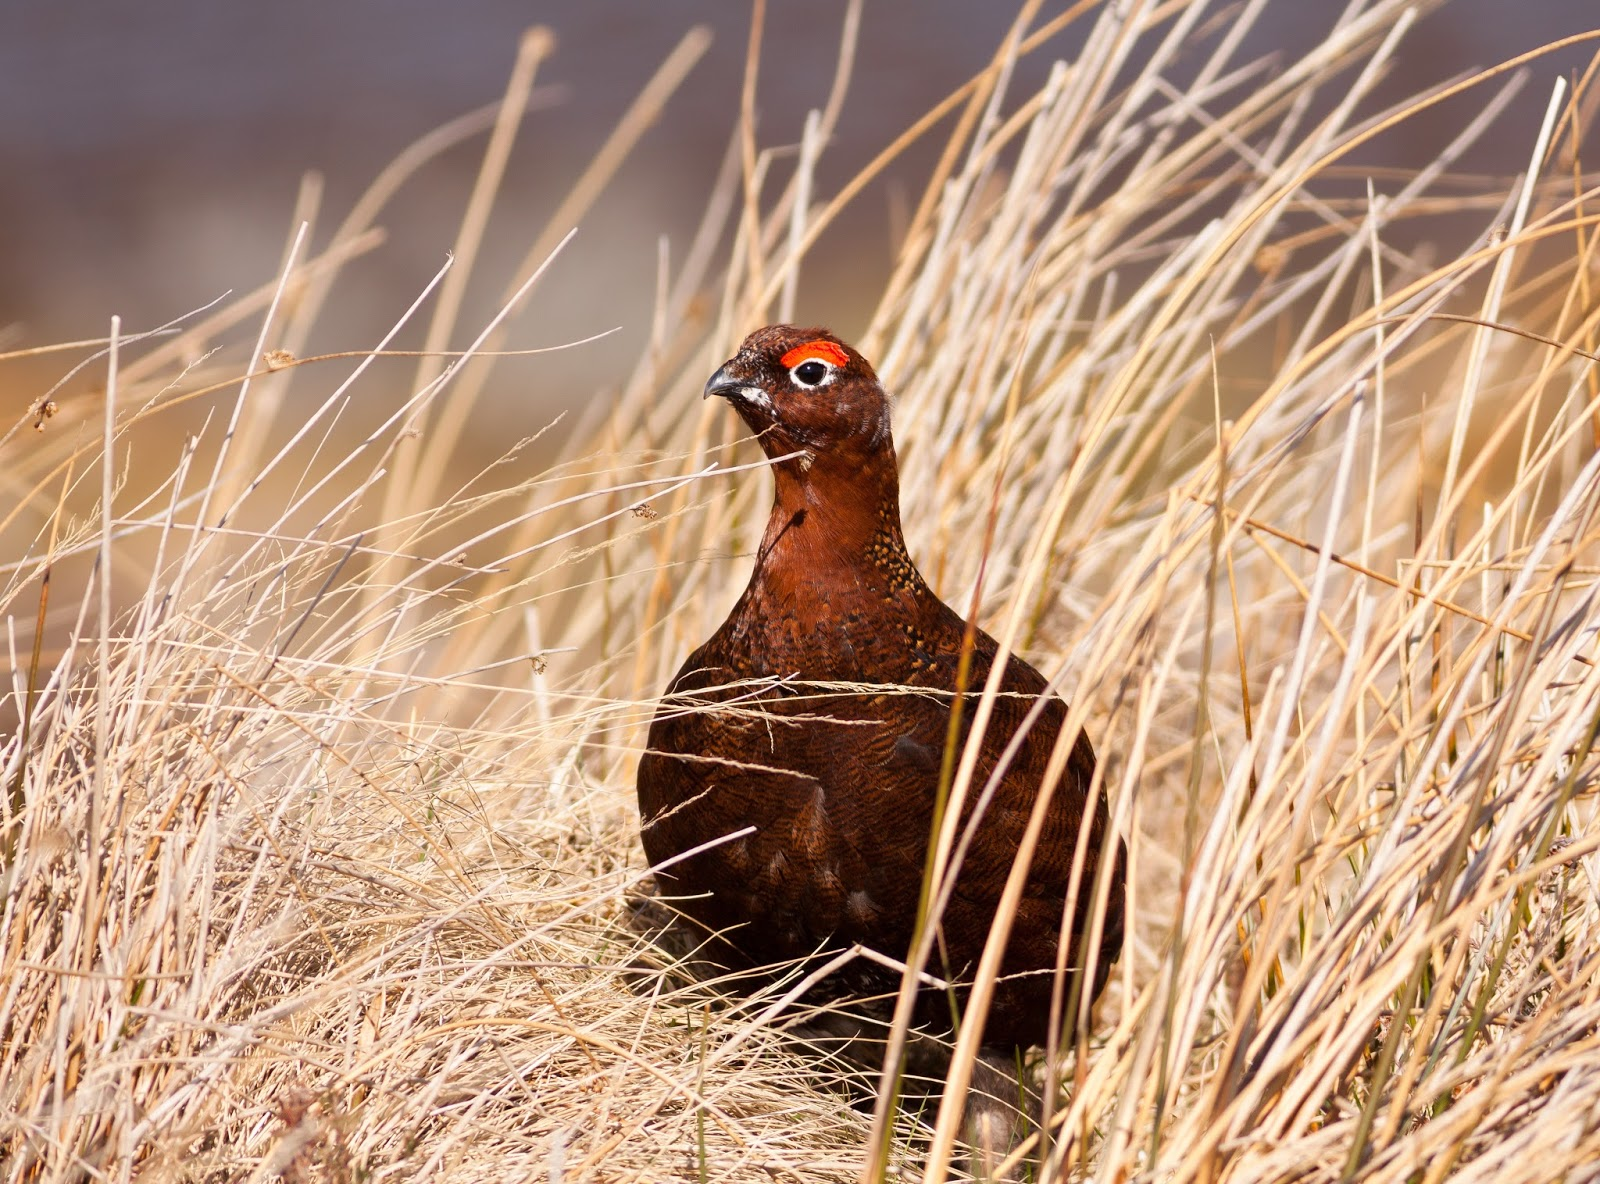 Red Grouse - Lochindorb, Scotland